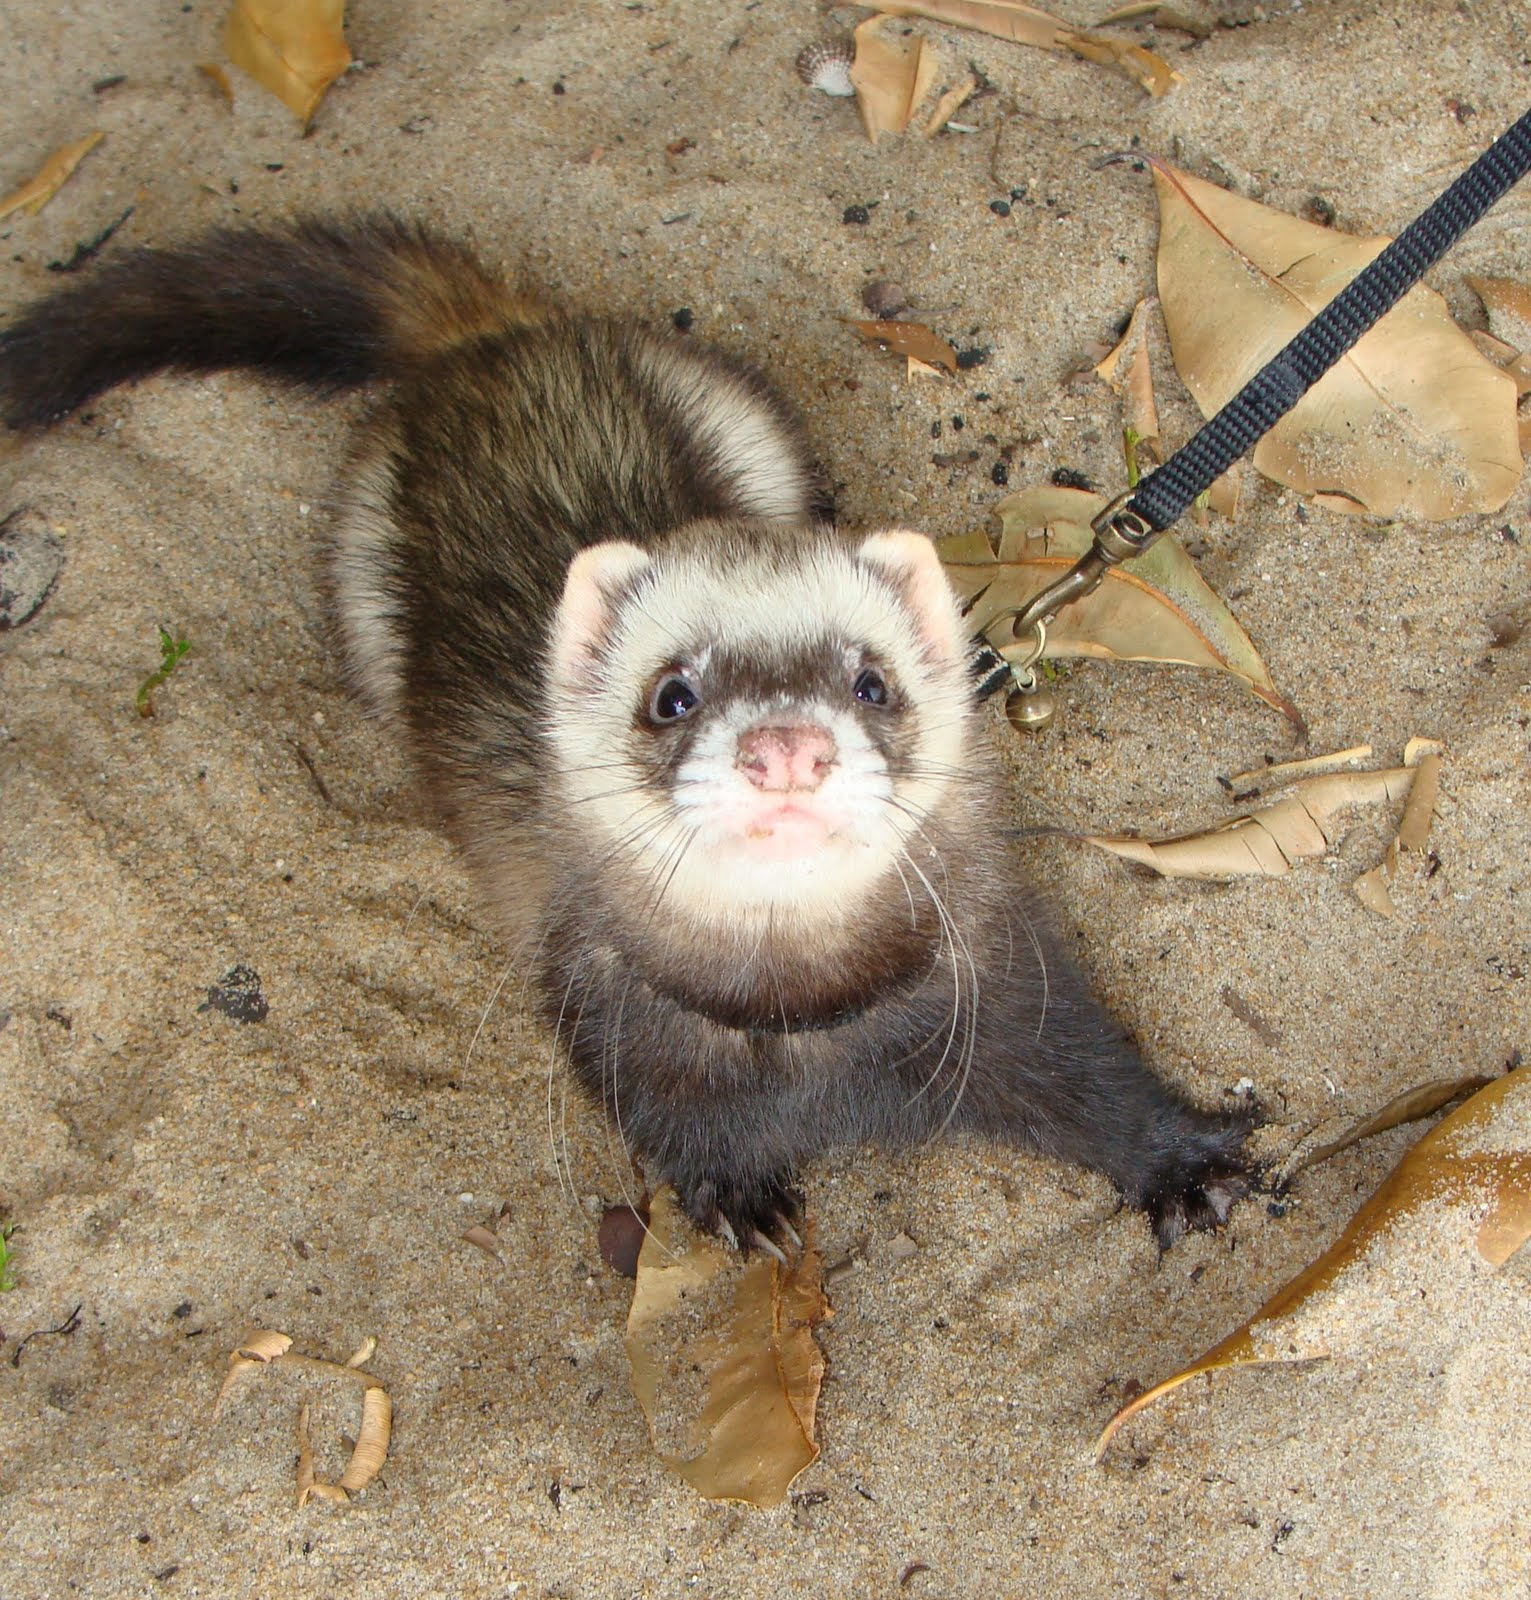 Special pose by Kaos the Ferret. A much mellow fellow than the feisty Disco.